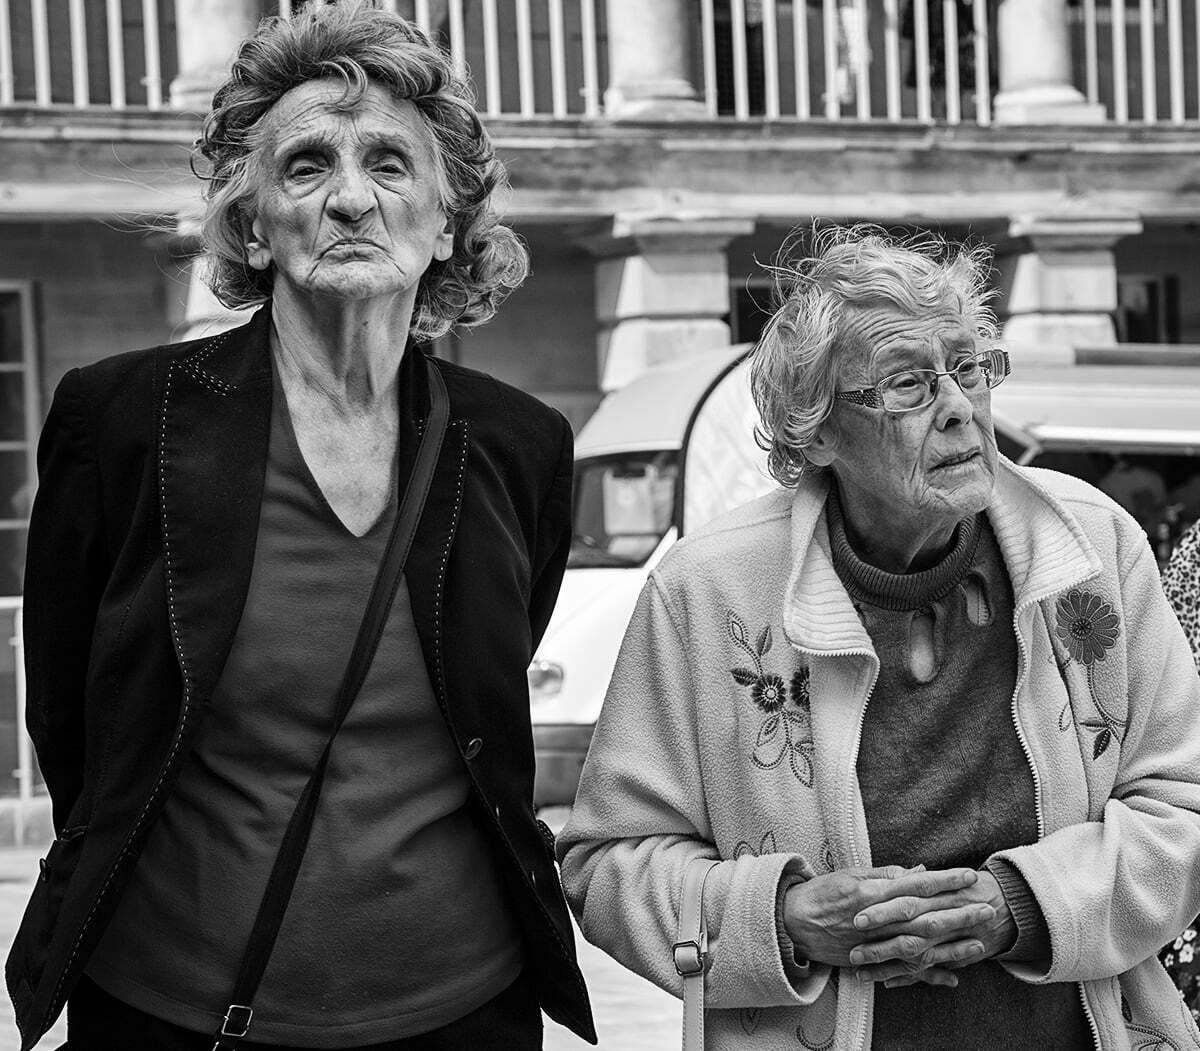 Street photography by Bridget Gill